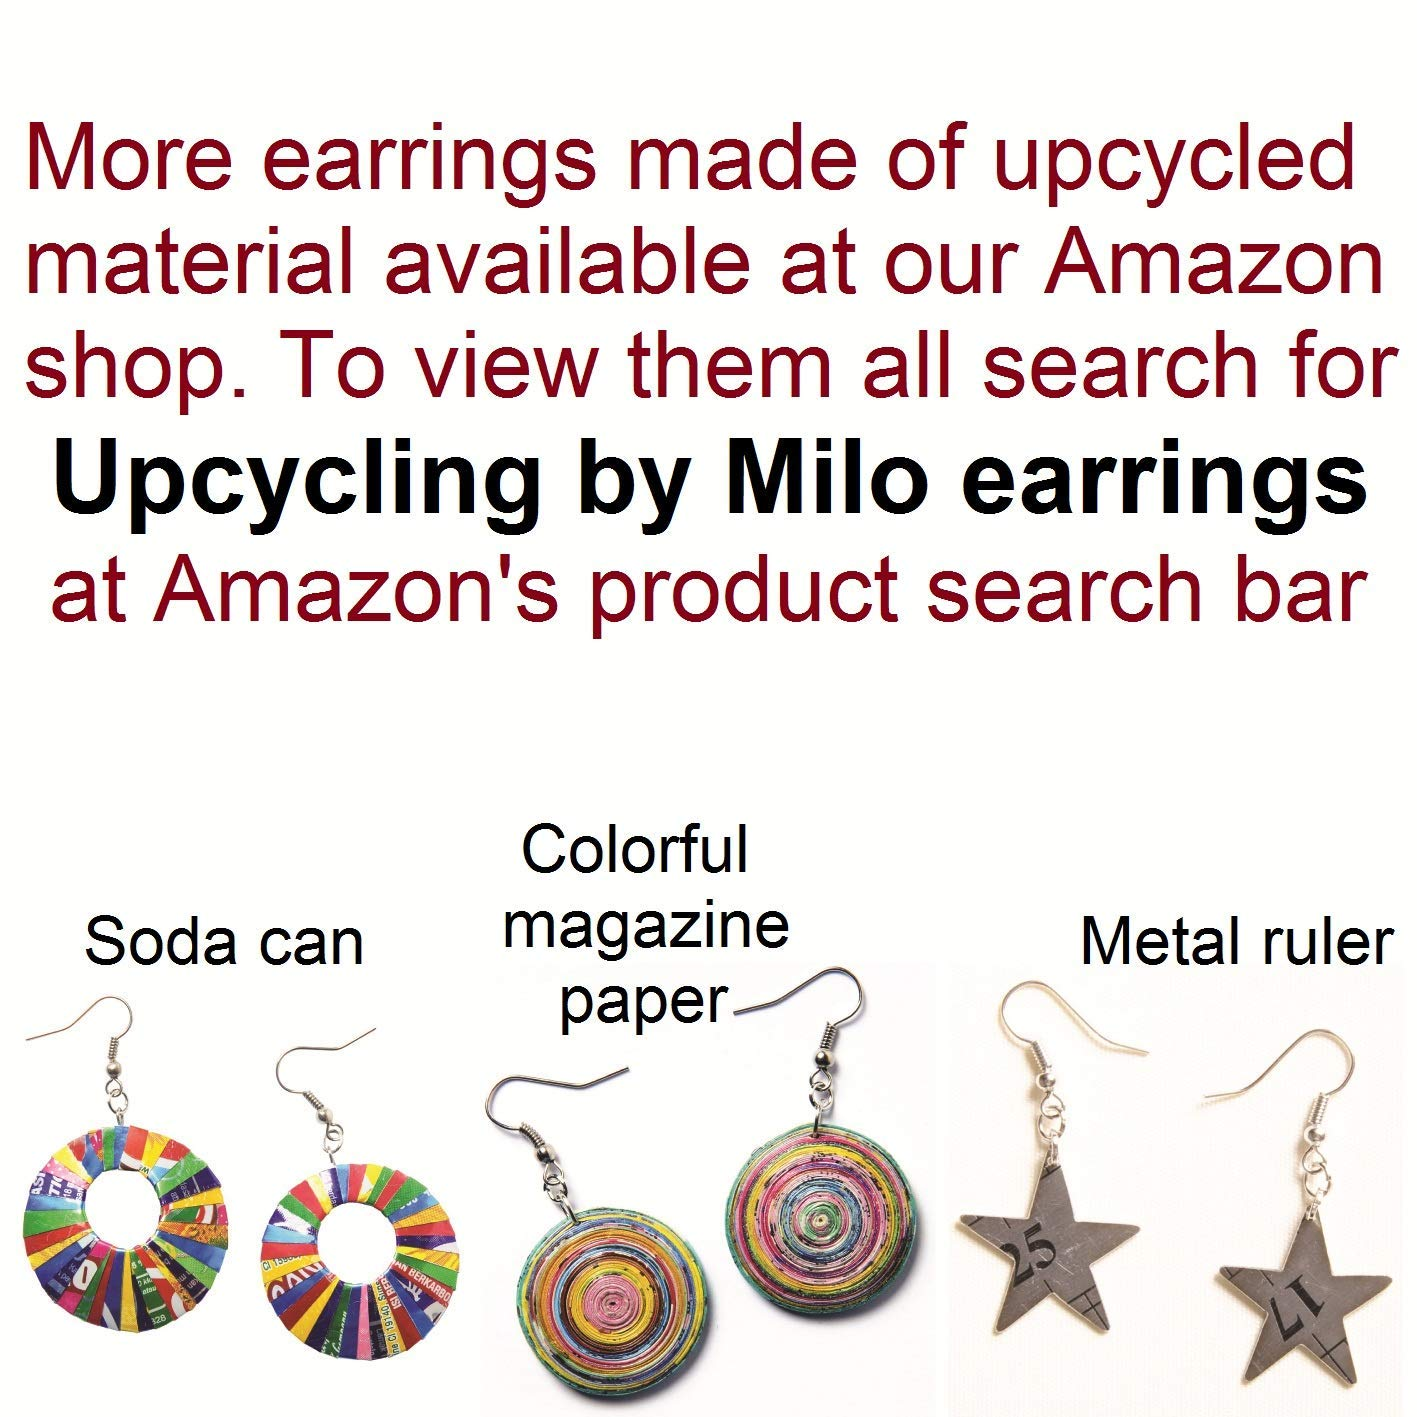 Copper Colored Aluminum Pointed Teardrop Earrings Upcycled Recycled Aluminum Light Weight Soda Can Earrings